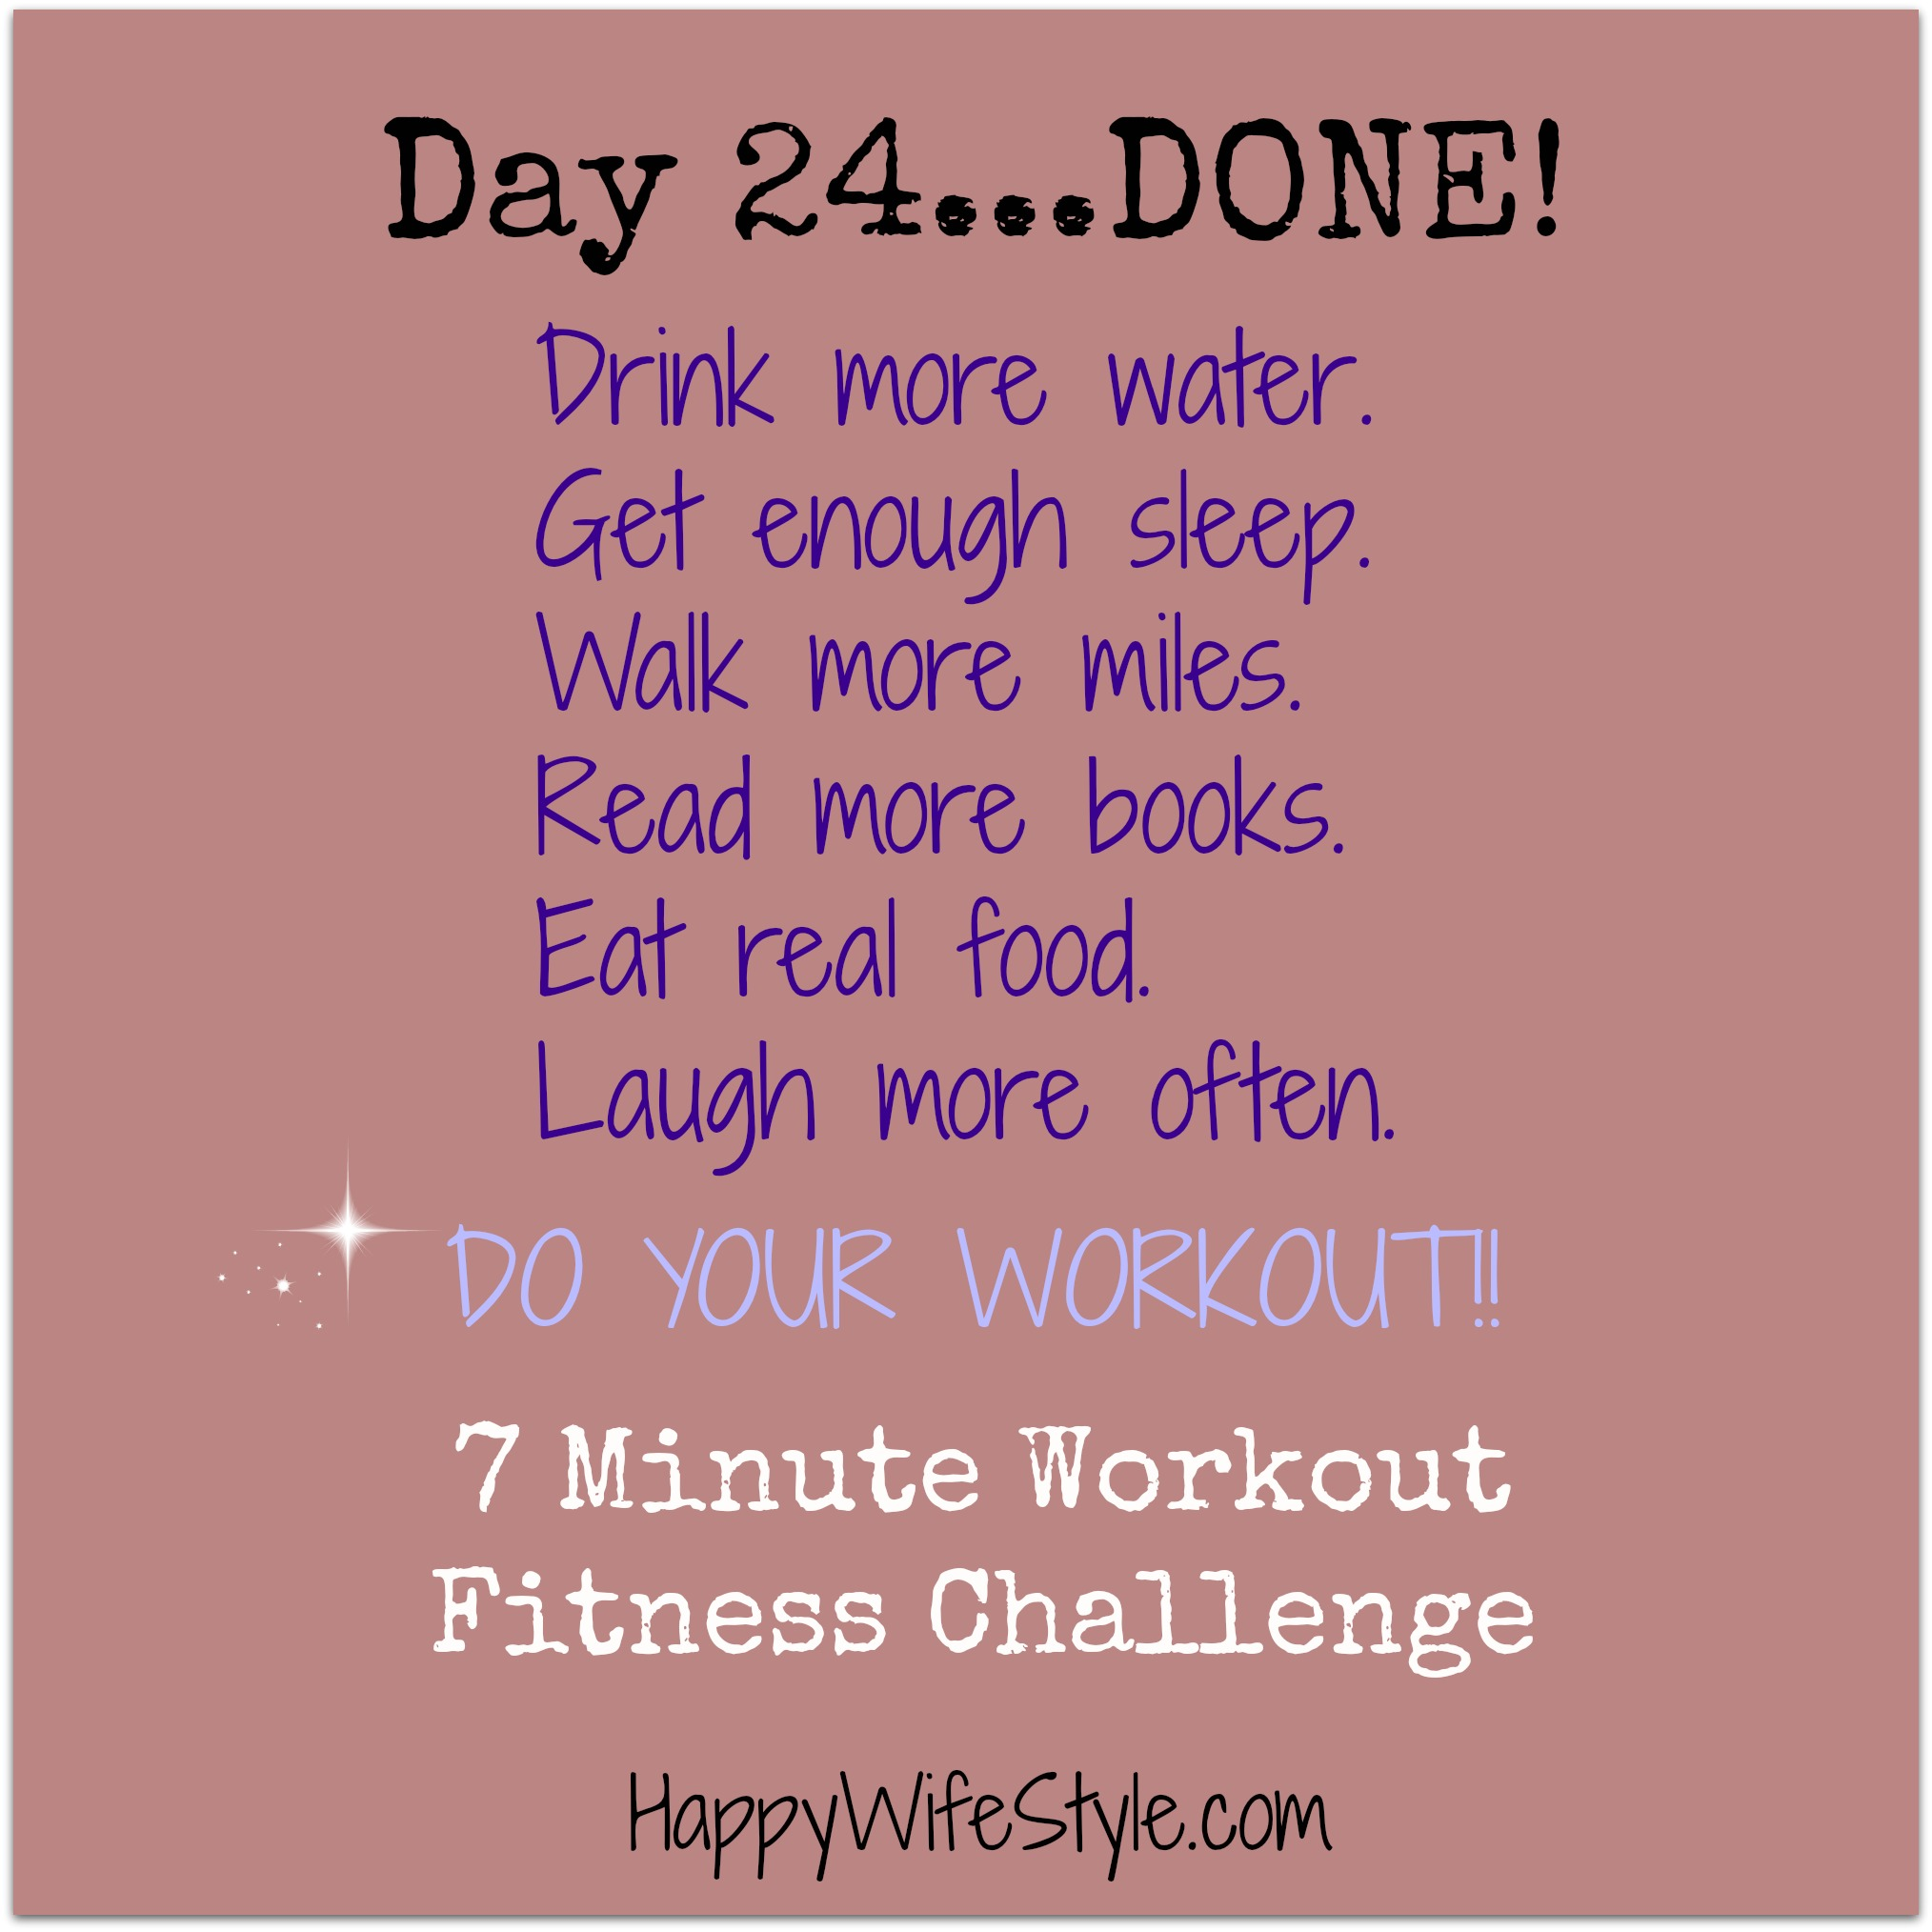 Day-24-done